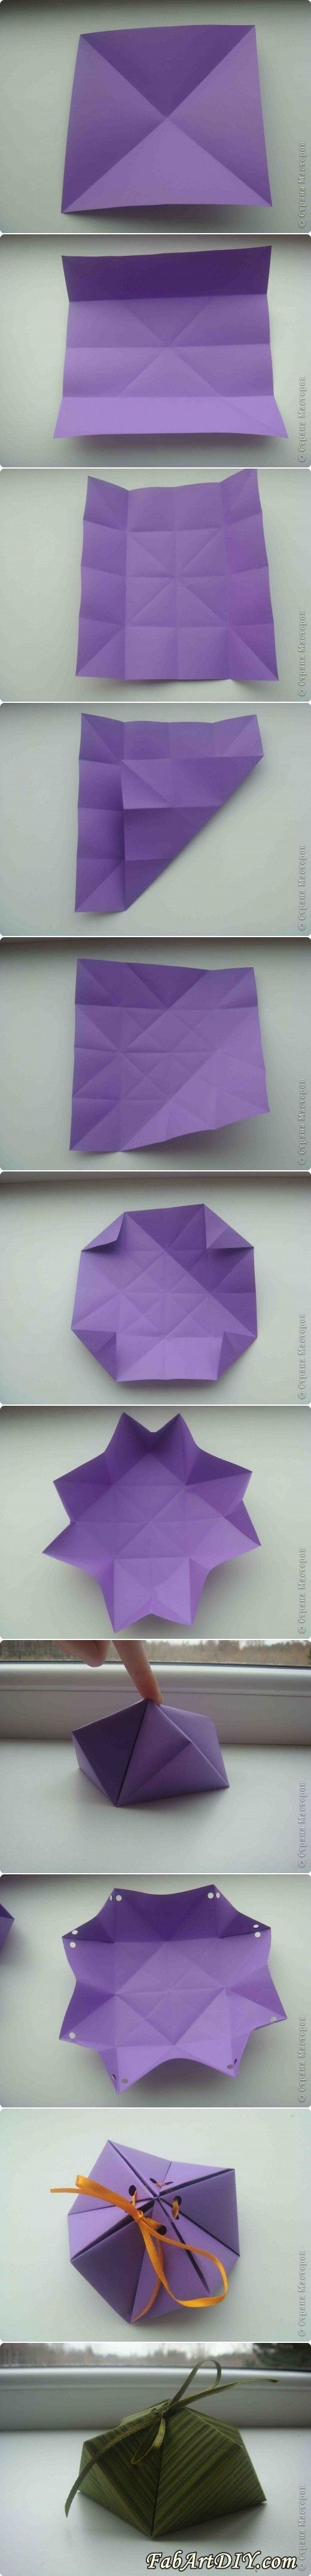 Paper Gift Box DIY | www.FabArtDIY.com LIKE Us on Facebook ==> https://www.facebook.com/FabArtDIY